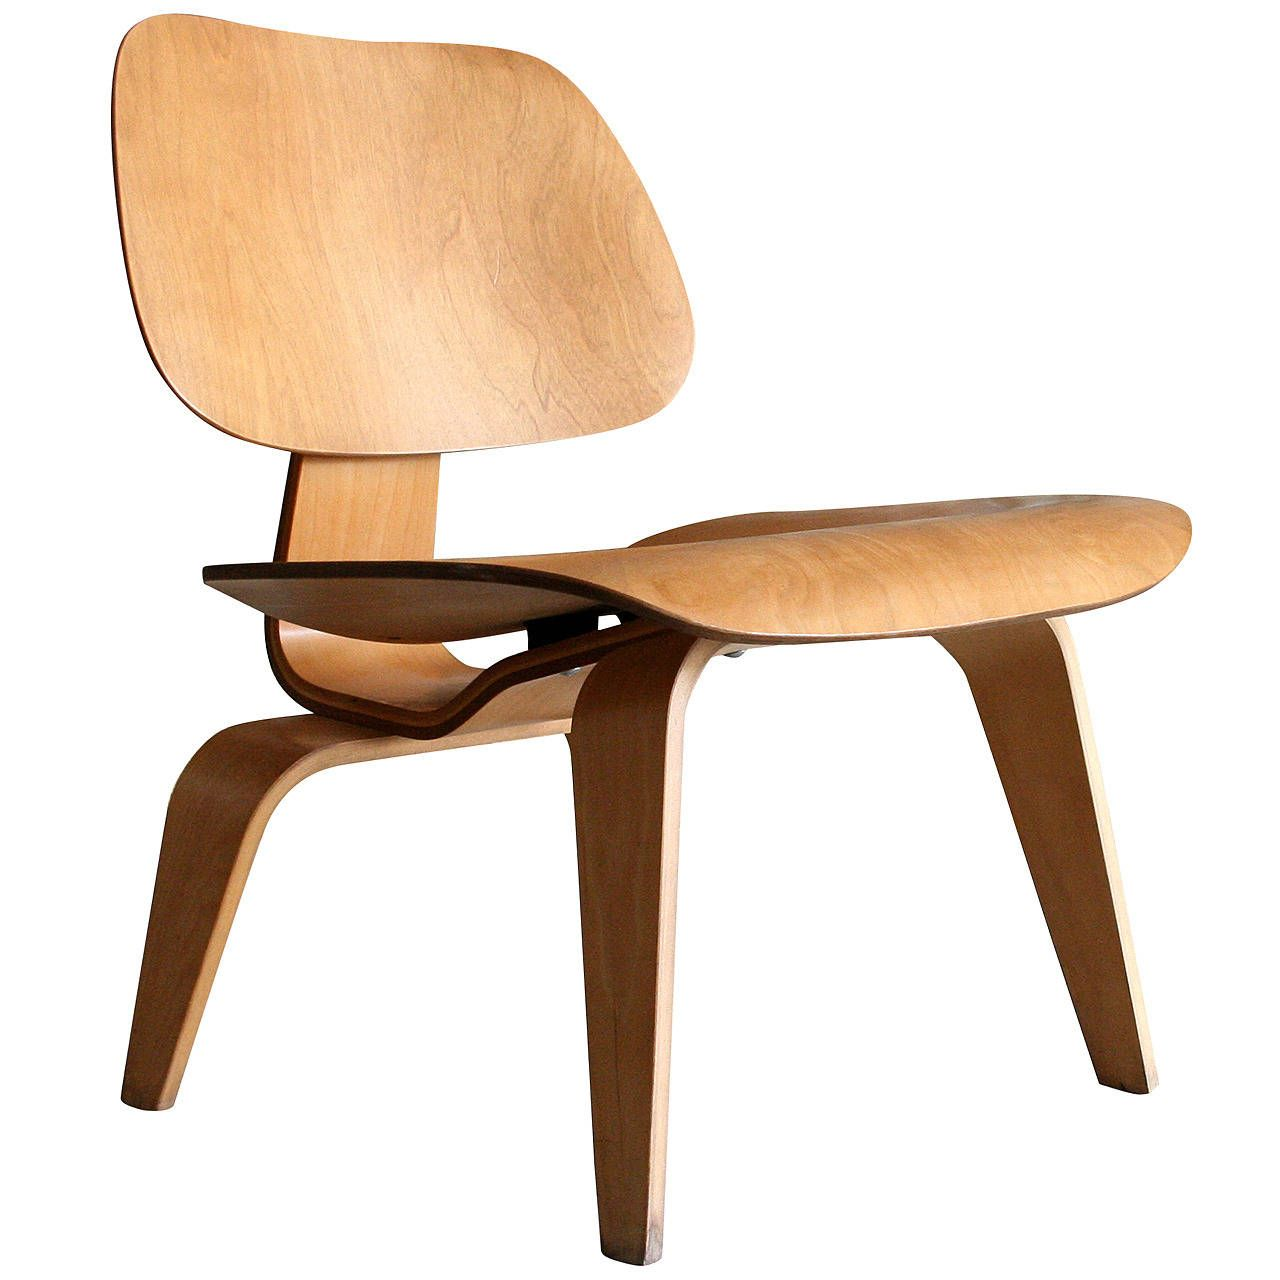 'Lounge Chair Wood' LCW by Charles Eames for Herman Miller